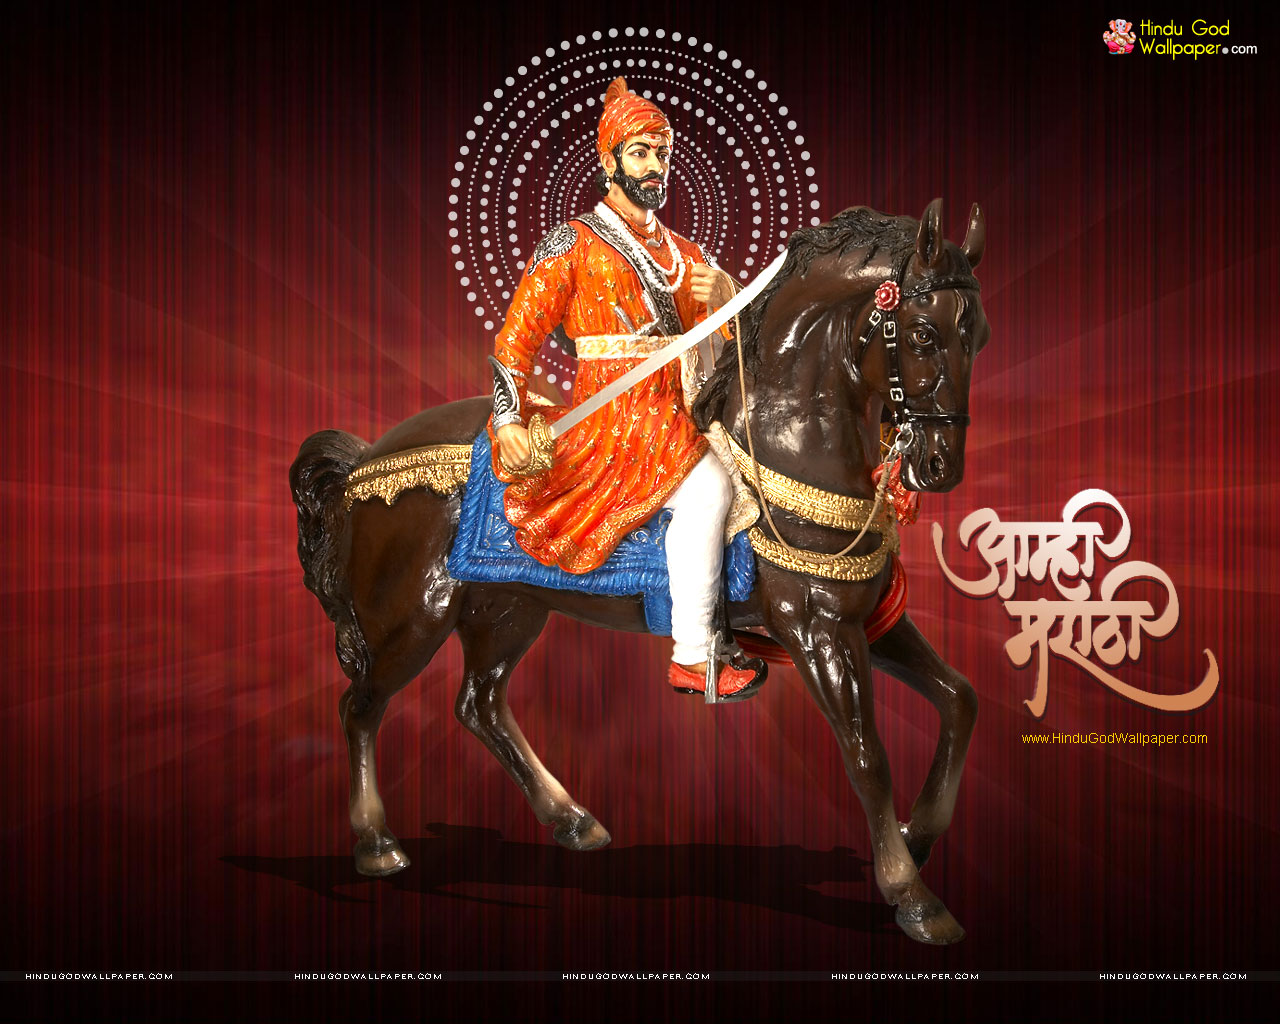 Shivaji Raje Hd Wallpapers Free Download